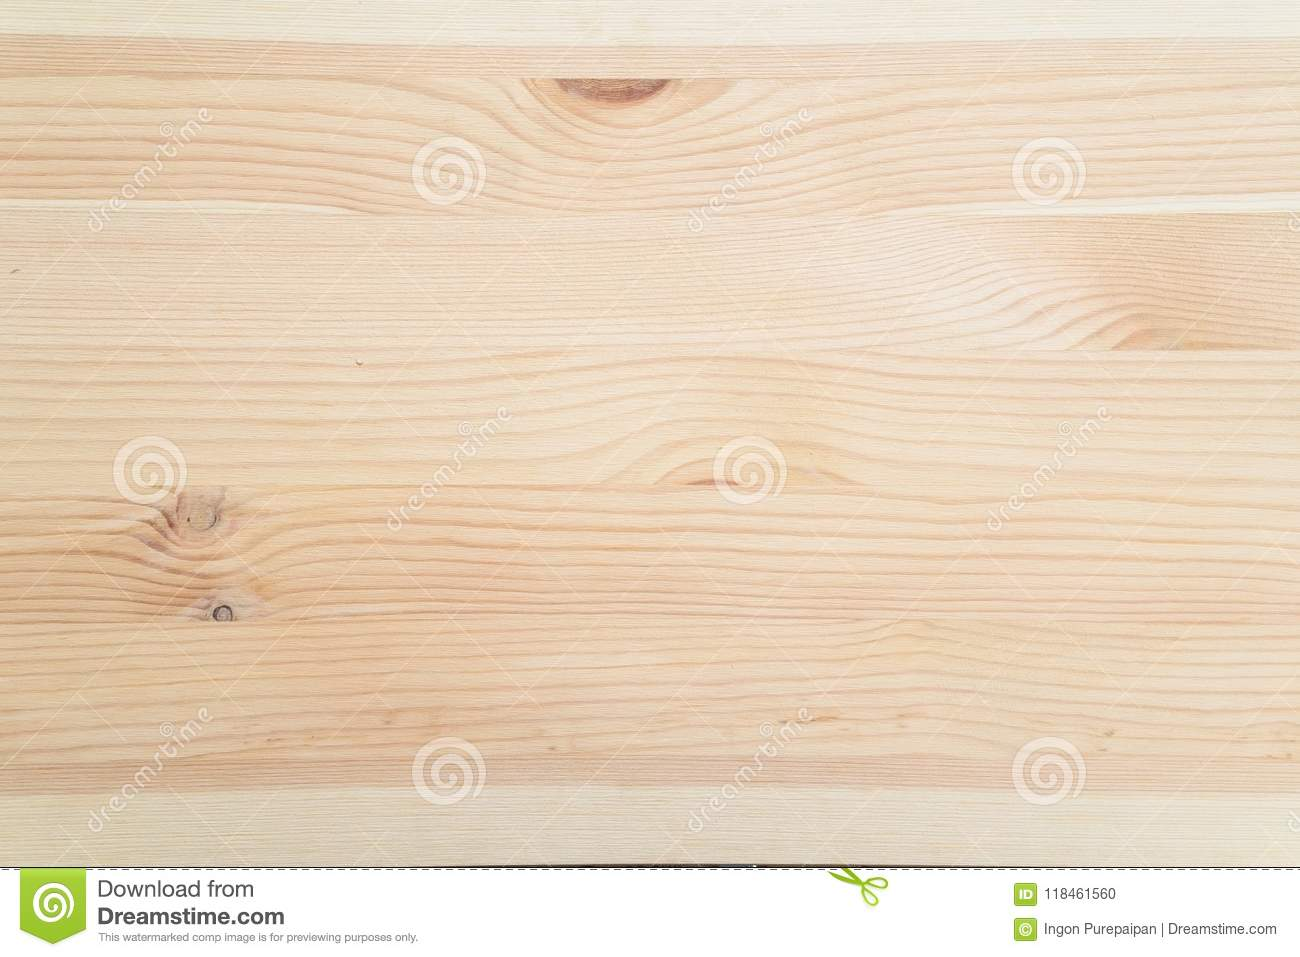 Close up brown Wooden planks texture backgrounds, White wood texture with natural patterns background.